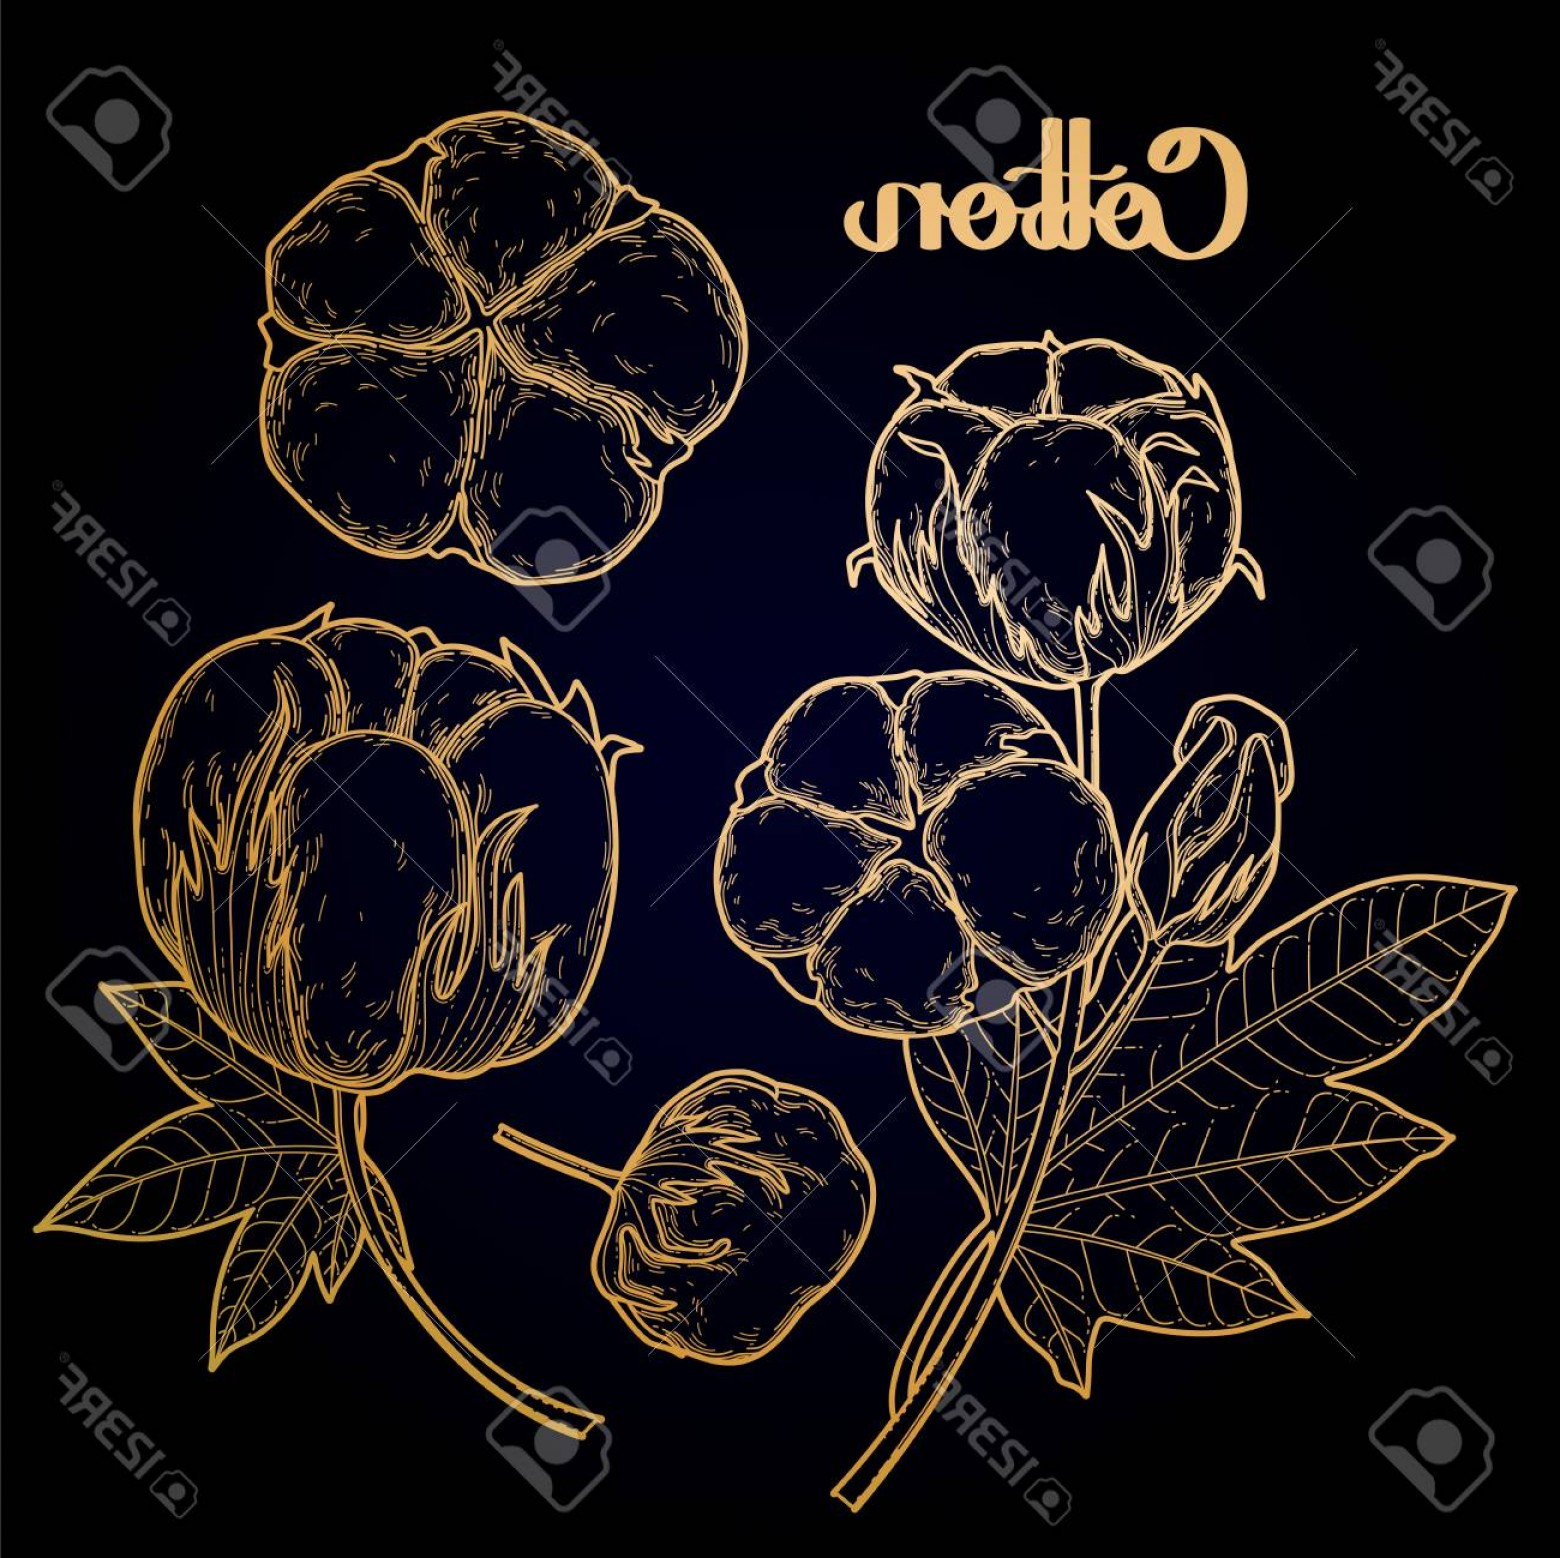 Cotton Vector Graphic: Photostock Vector Graphic Cotton Plants Set Vector Isolated Art In Golden Colors